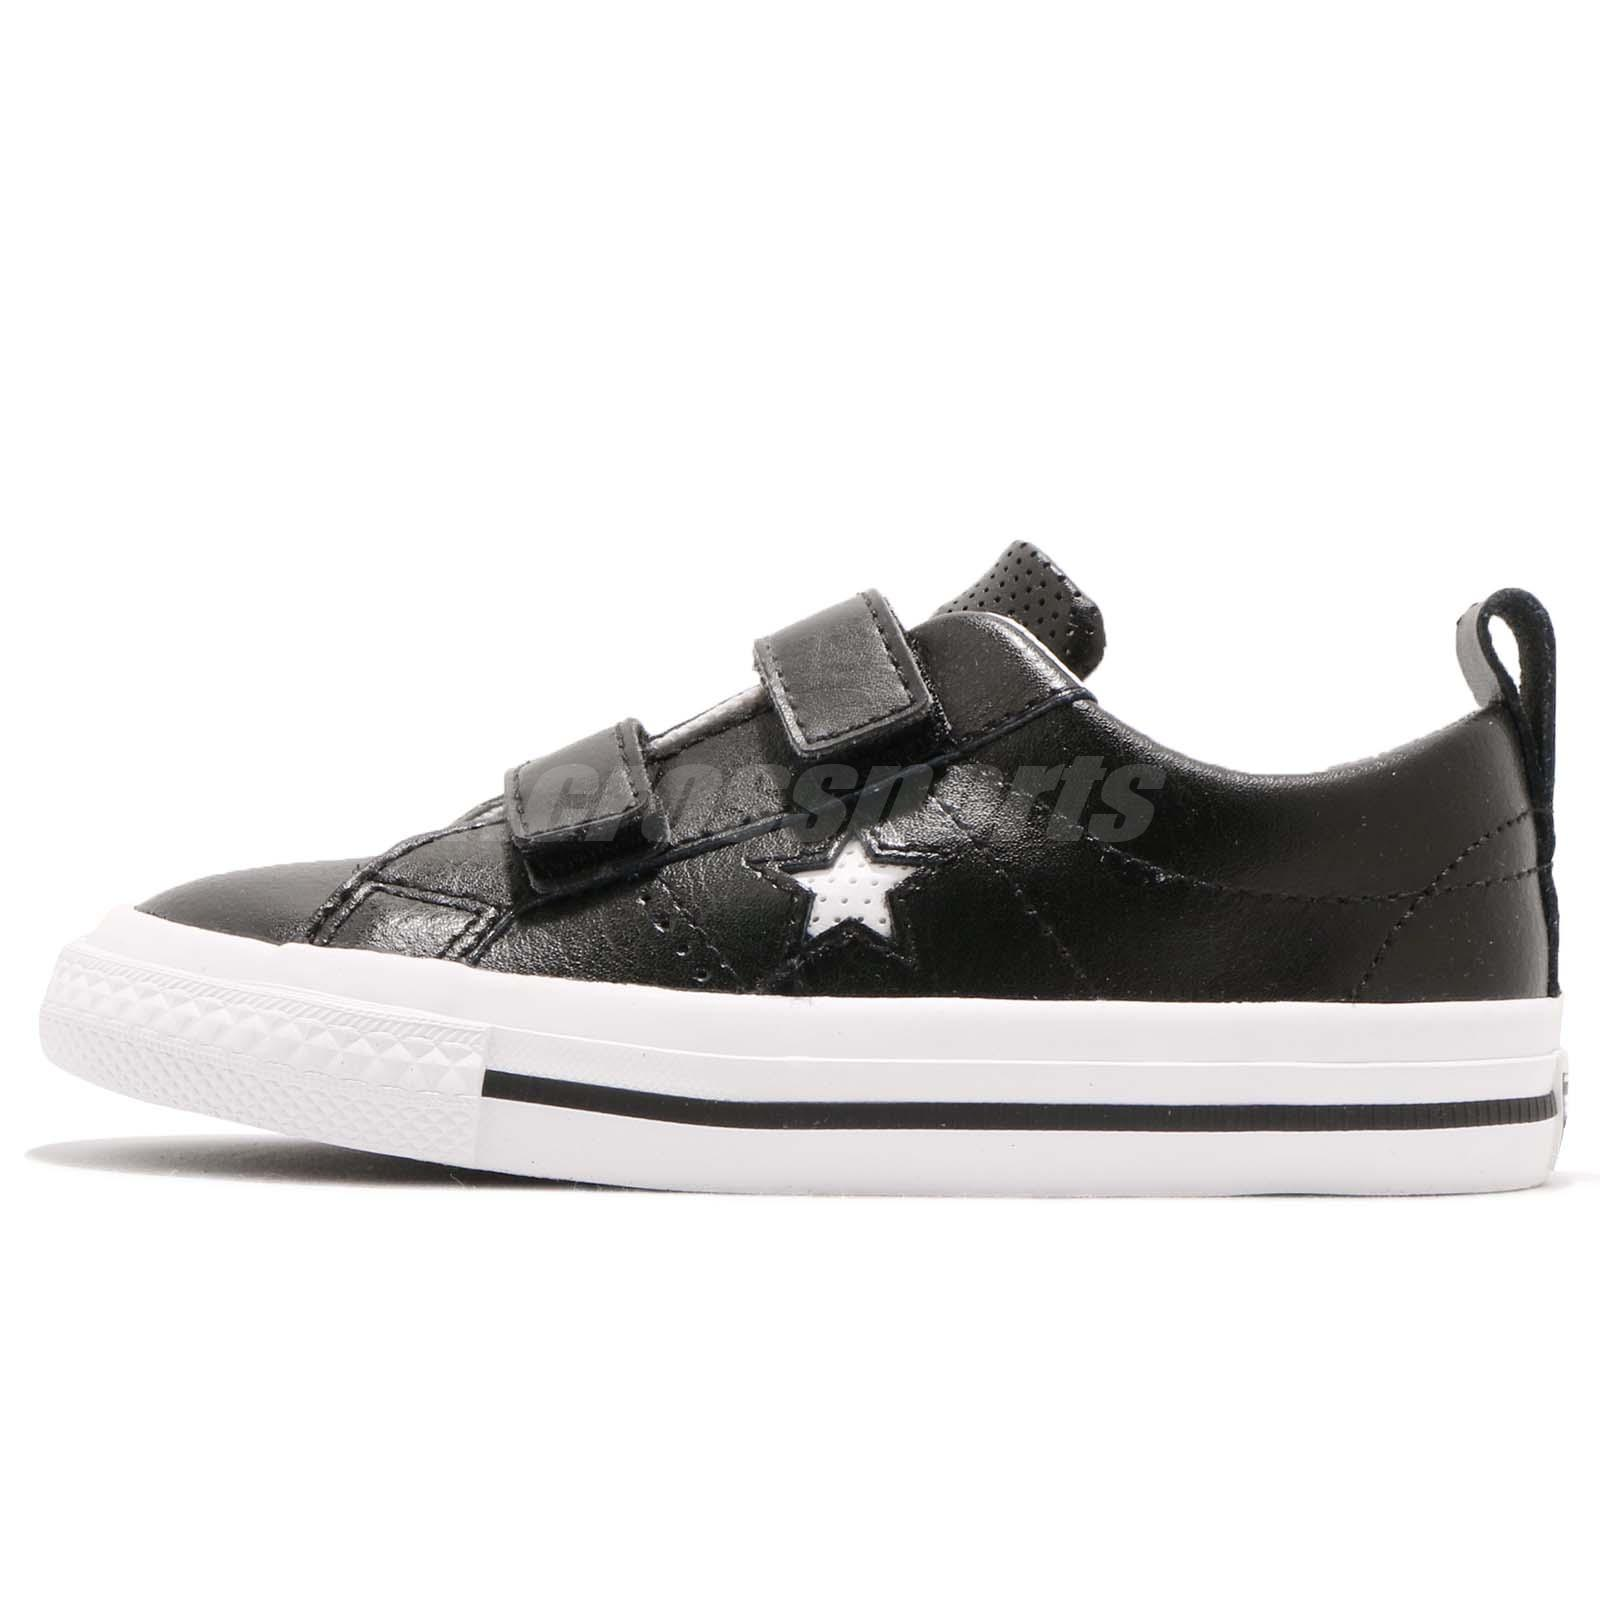 2905960d84ae Converse One Star 2V TD Black White Strap Toddler Infant Baby Shoes 758495C